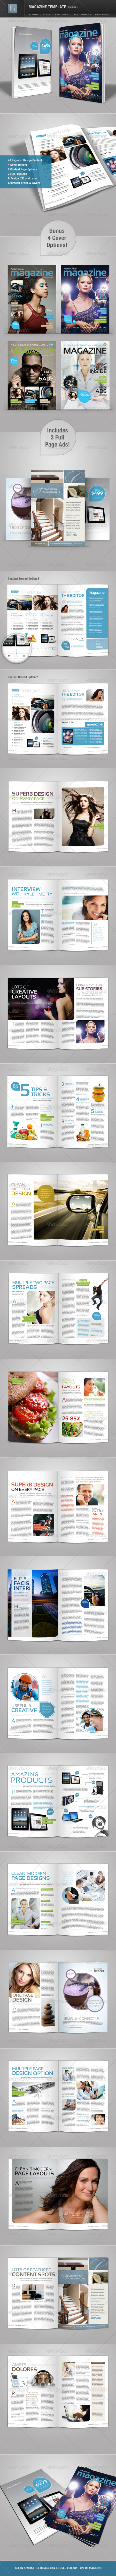 Magazine Template | Volume 2 - Magazines Print Templates